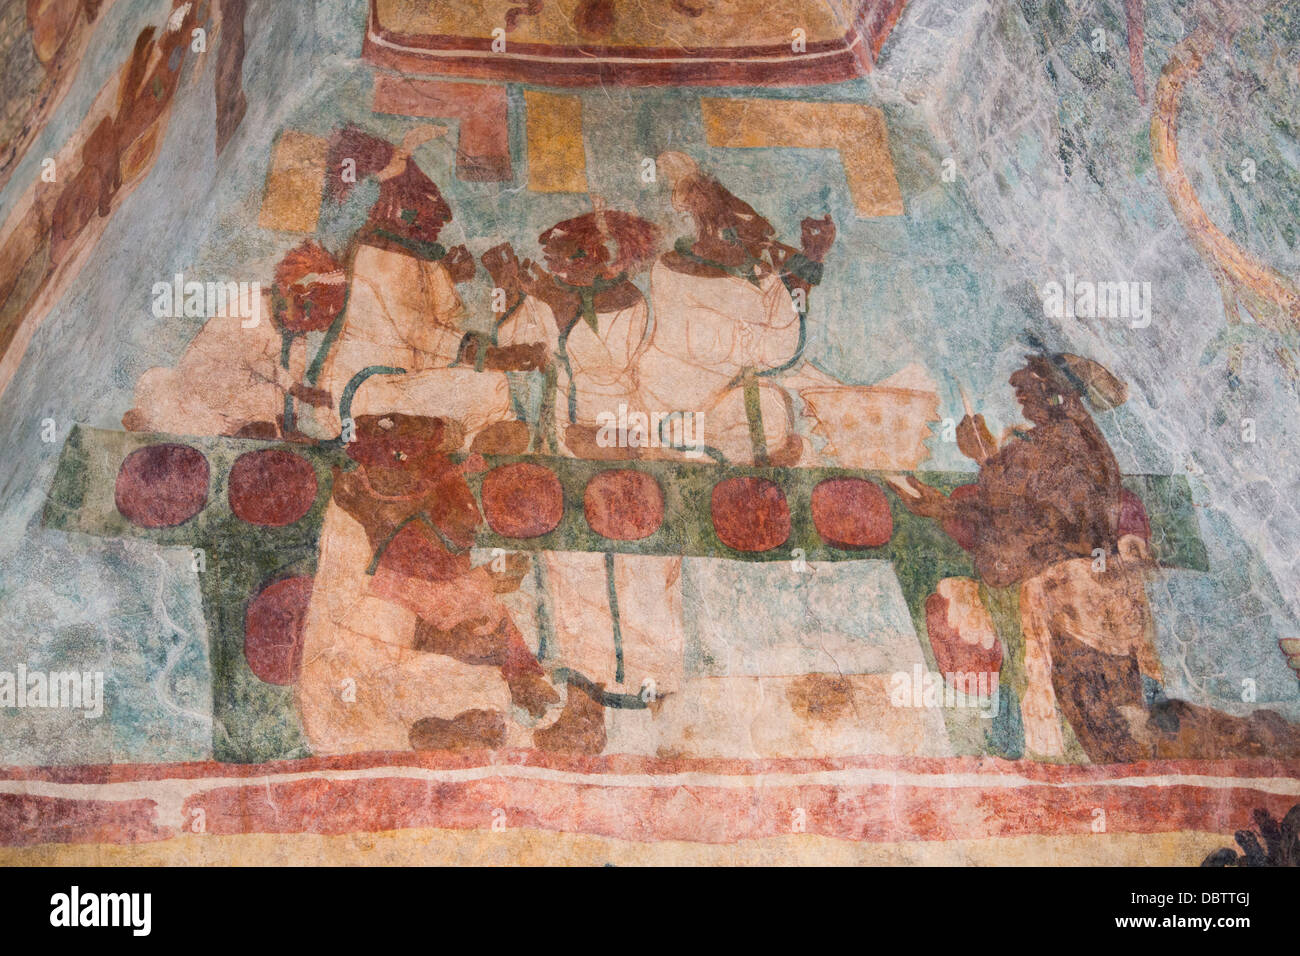 Royal family performing a blood letting ritual, Room 3, Temple of Murals, Bonampak Archaeological Zone, Chiapas, - Stock Image